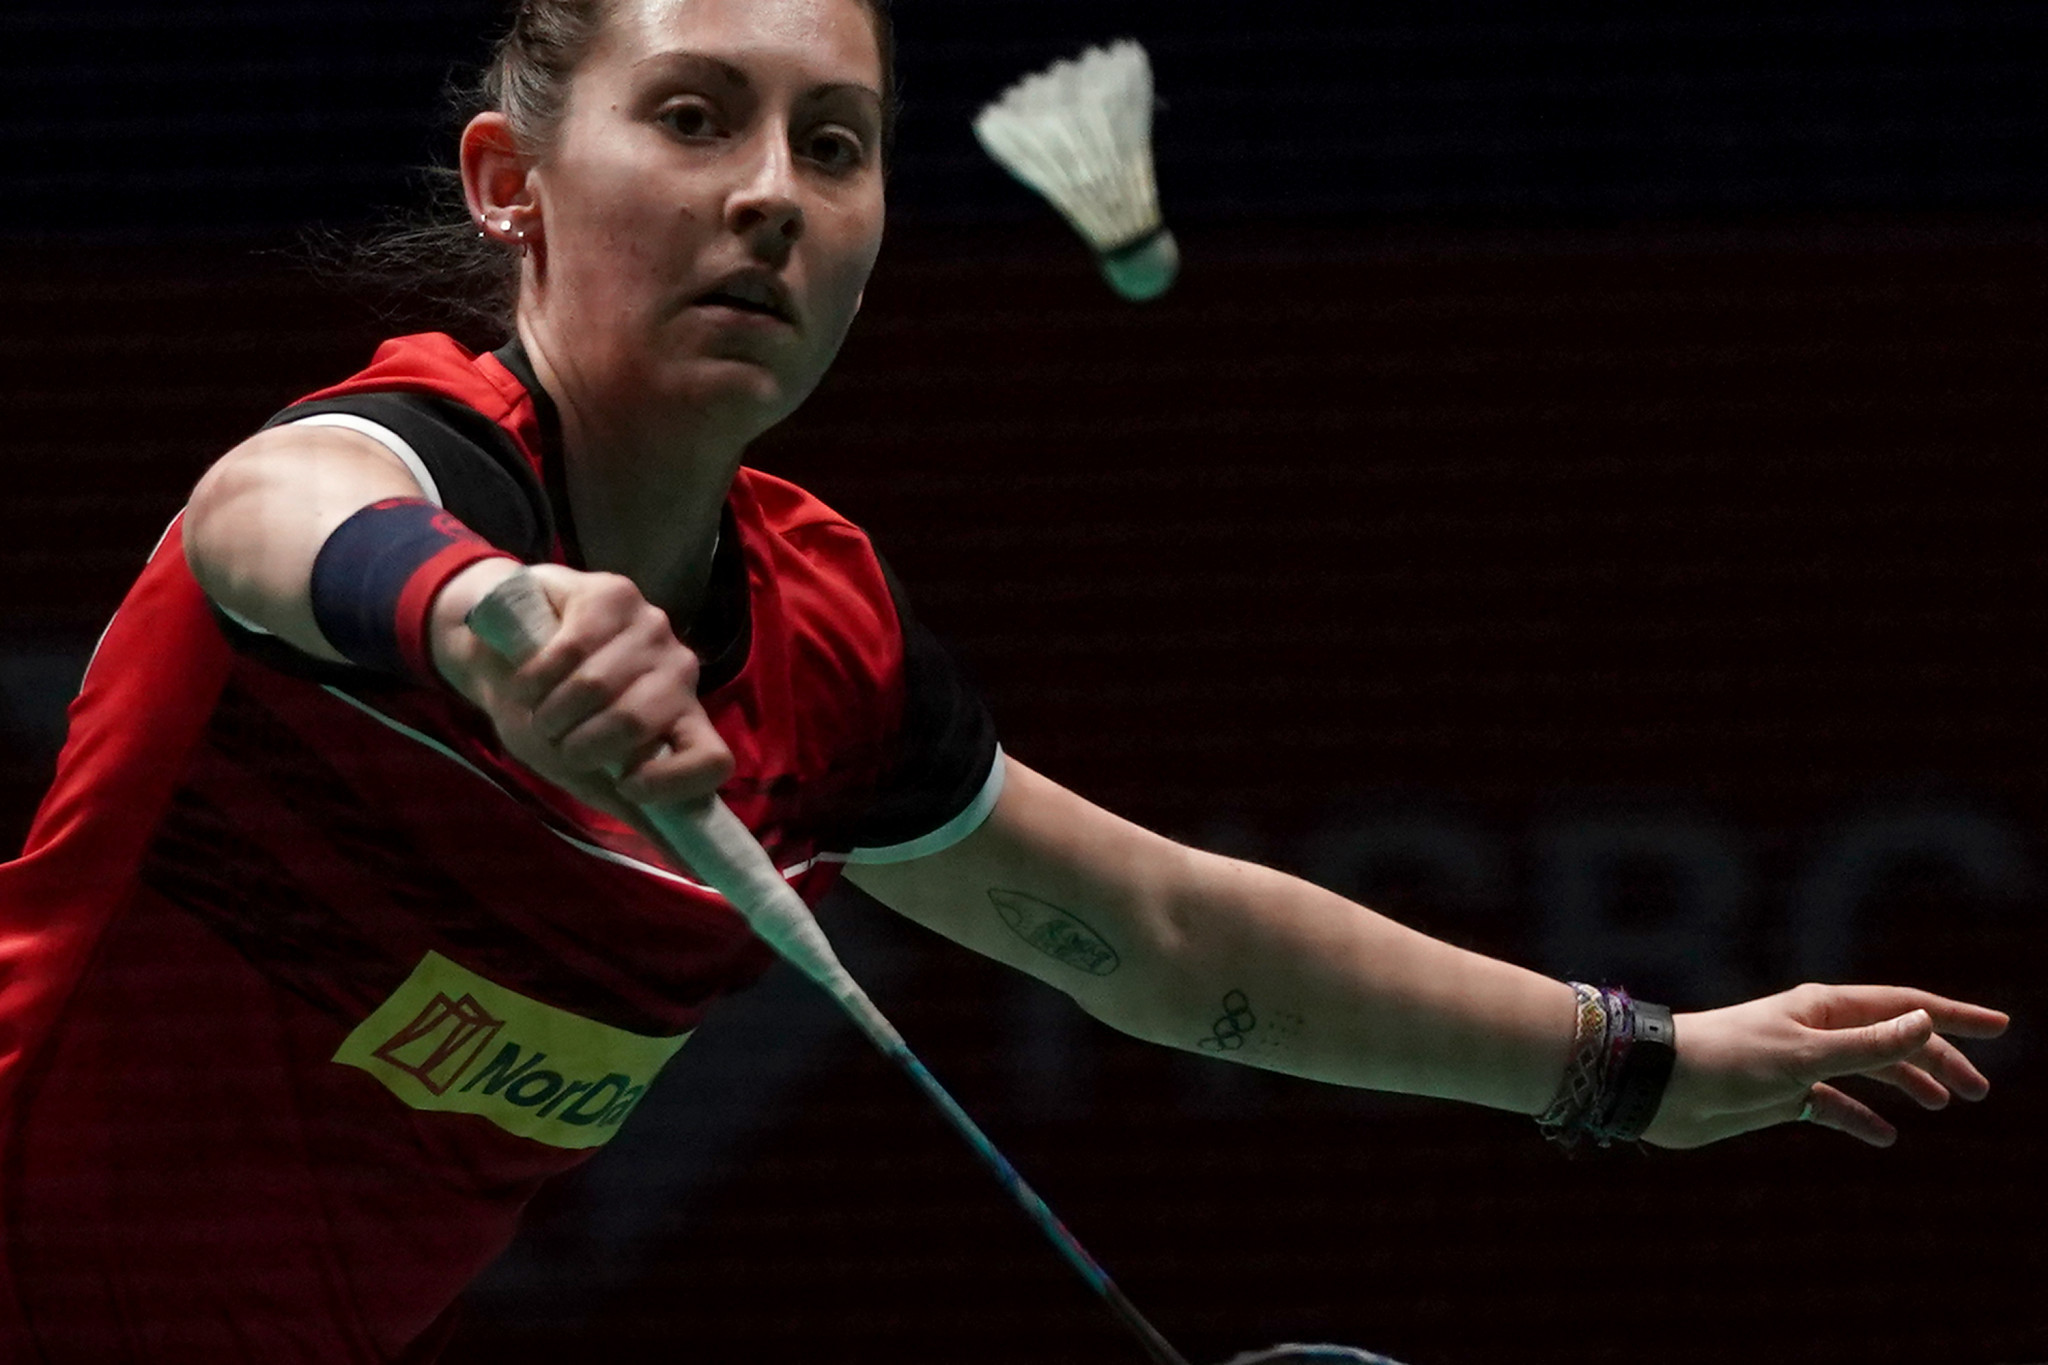 Top seed Gilmour claims hard-fought win to reach BWF Russian Open semi-finals